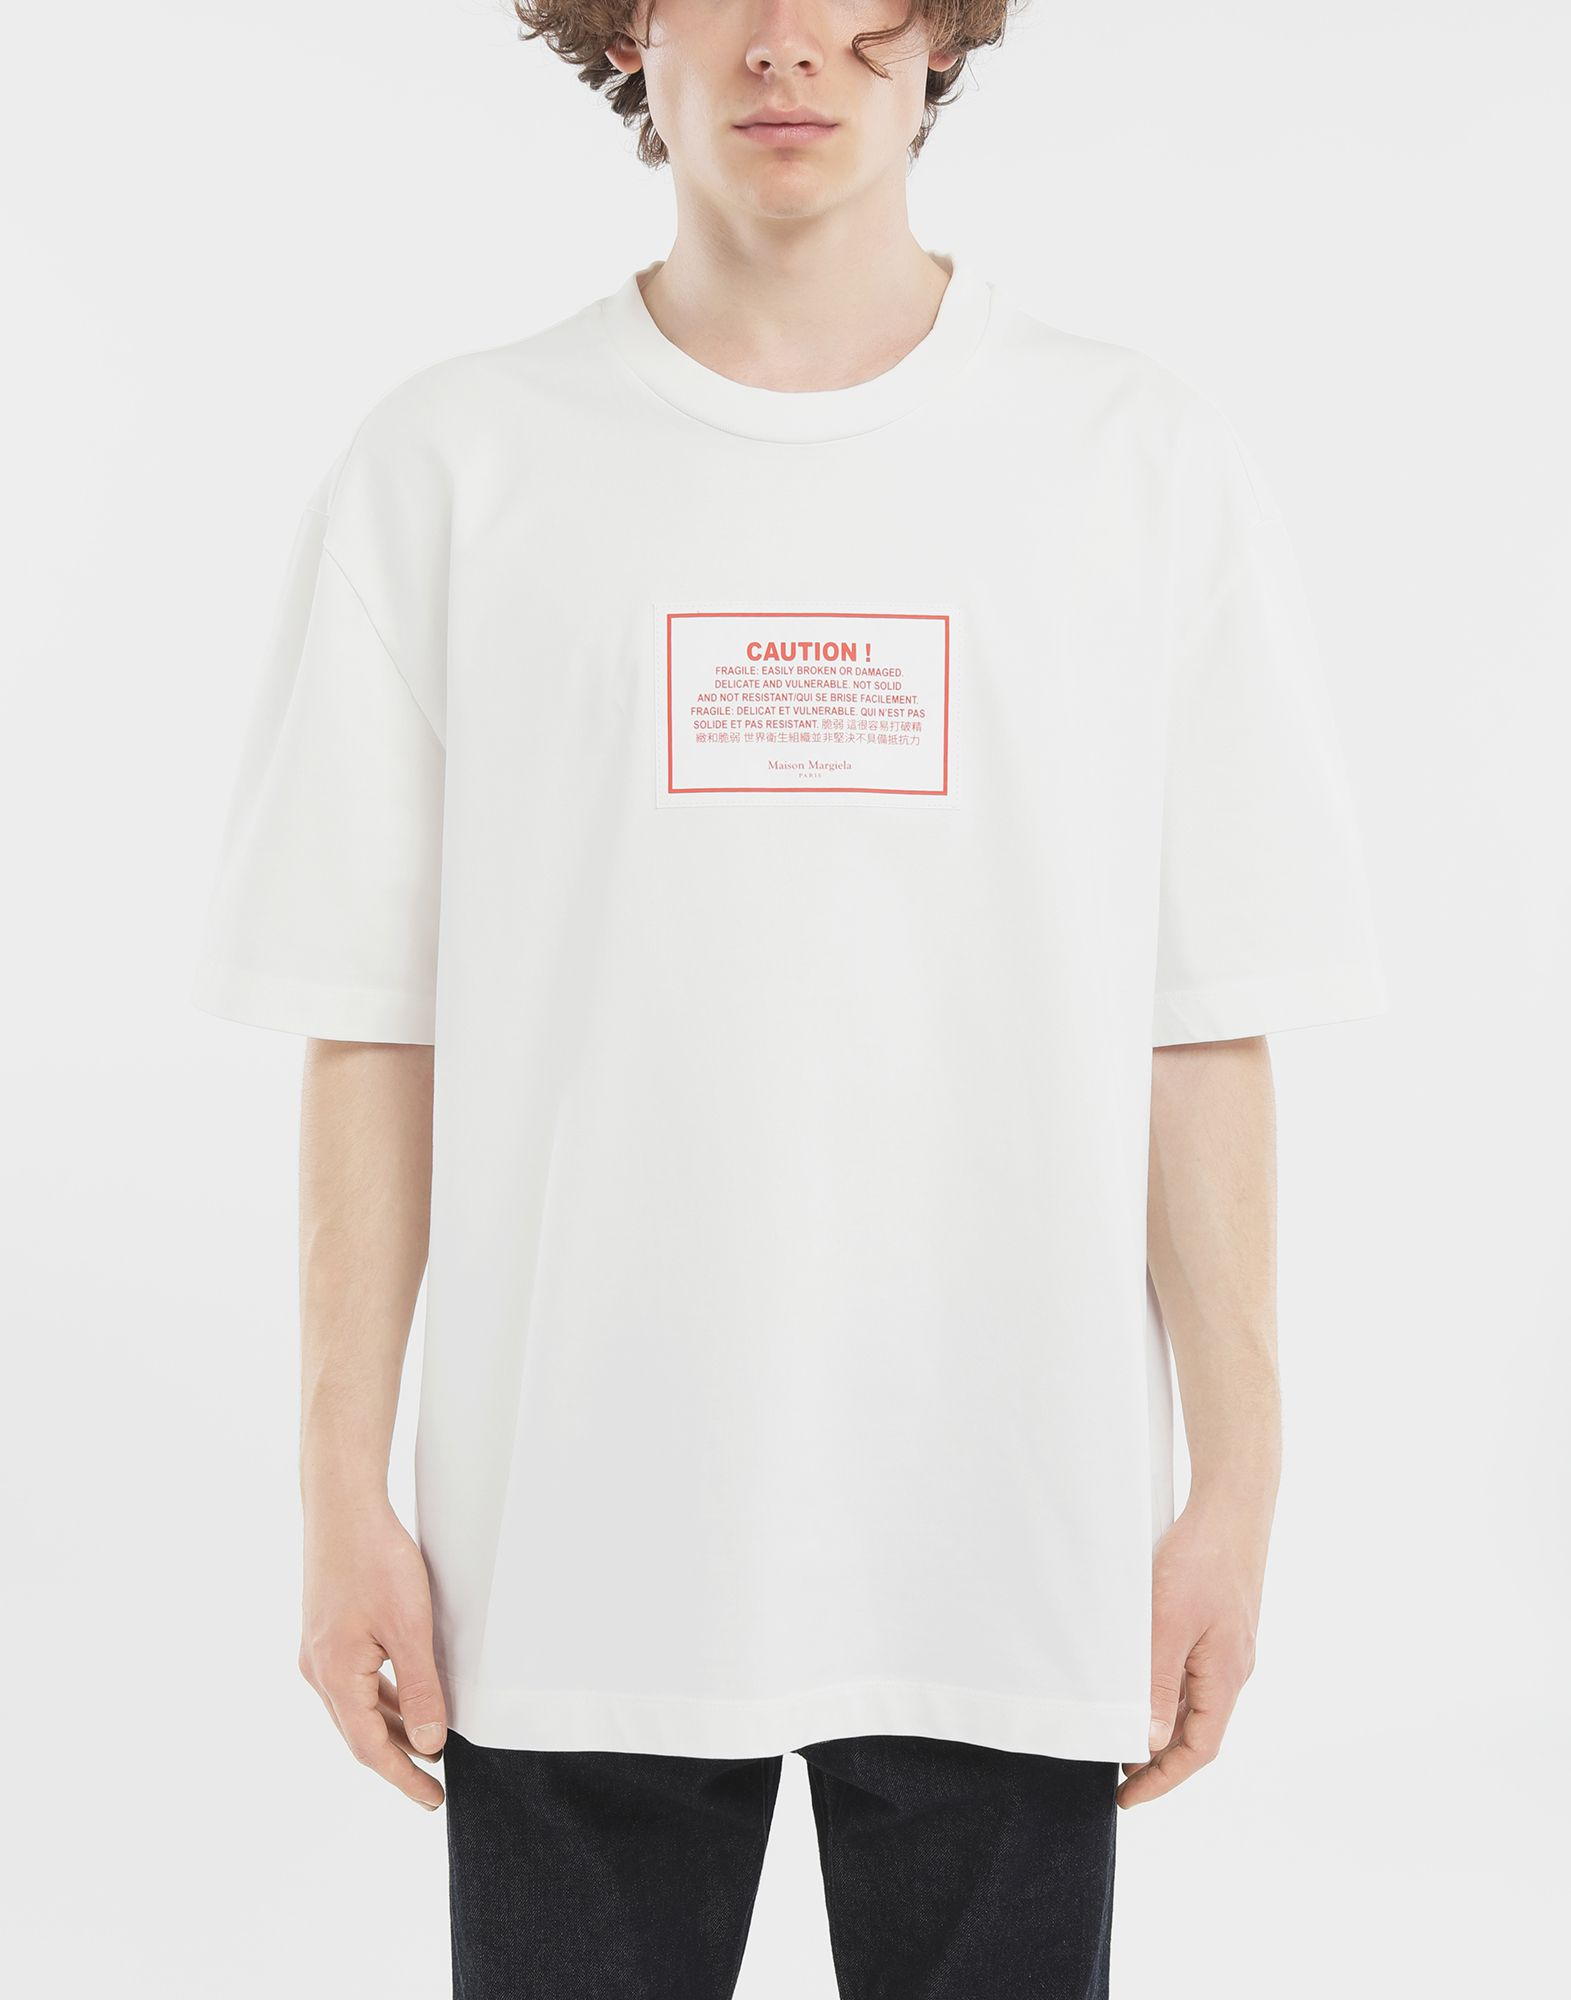 MAISON MARGIELA T-Shirt 'Caution' Kurzärmliges T-Shirt Herren r